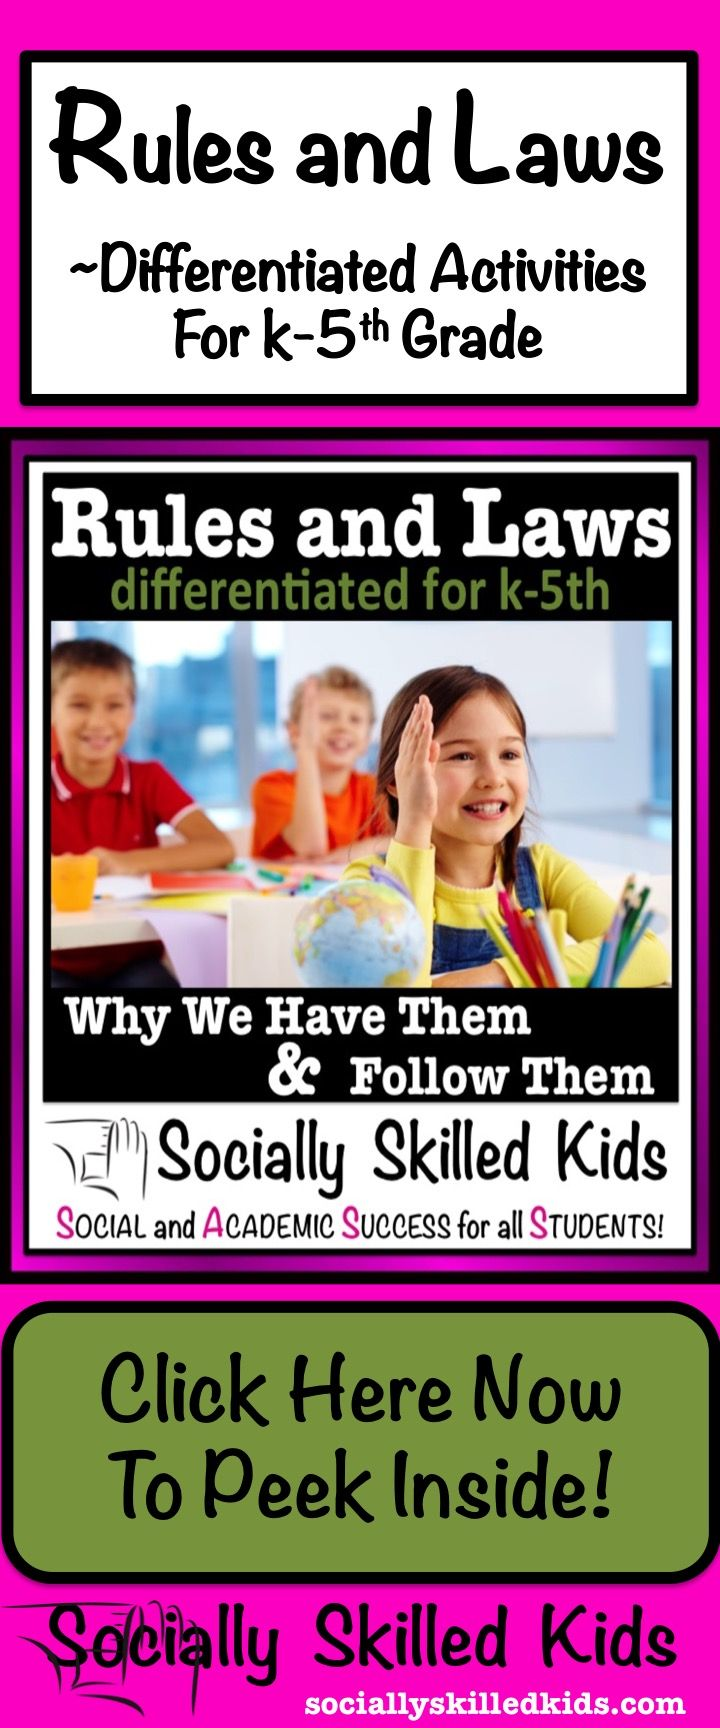 Rules and Laws: Why we have them and follow them. Differentiated activities to help children learn the benefits to having rules and laws.